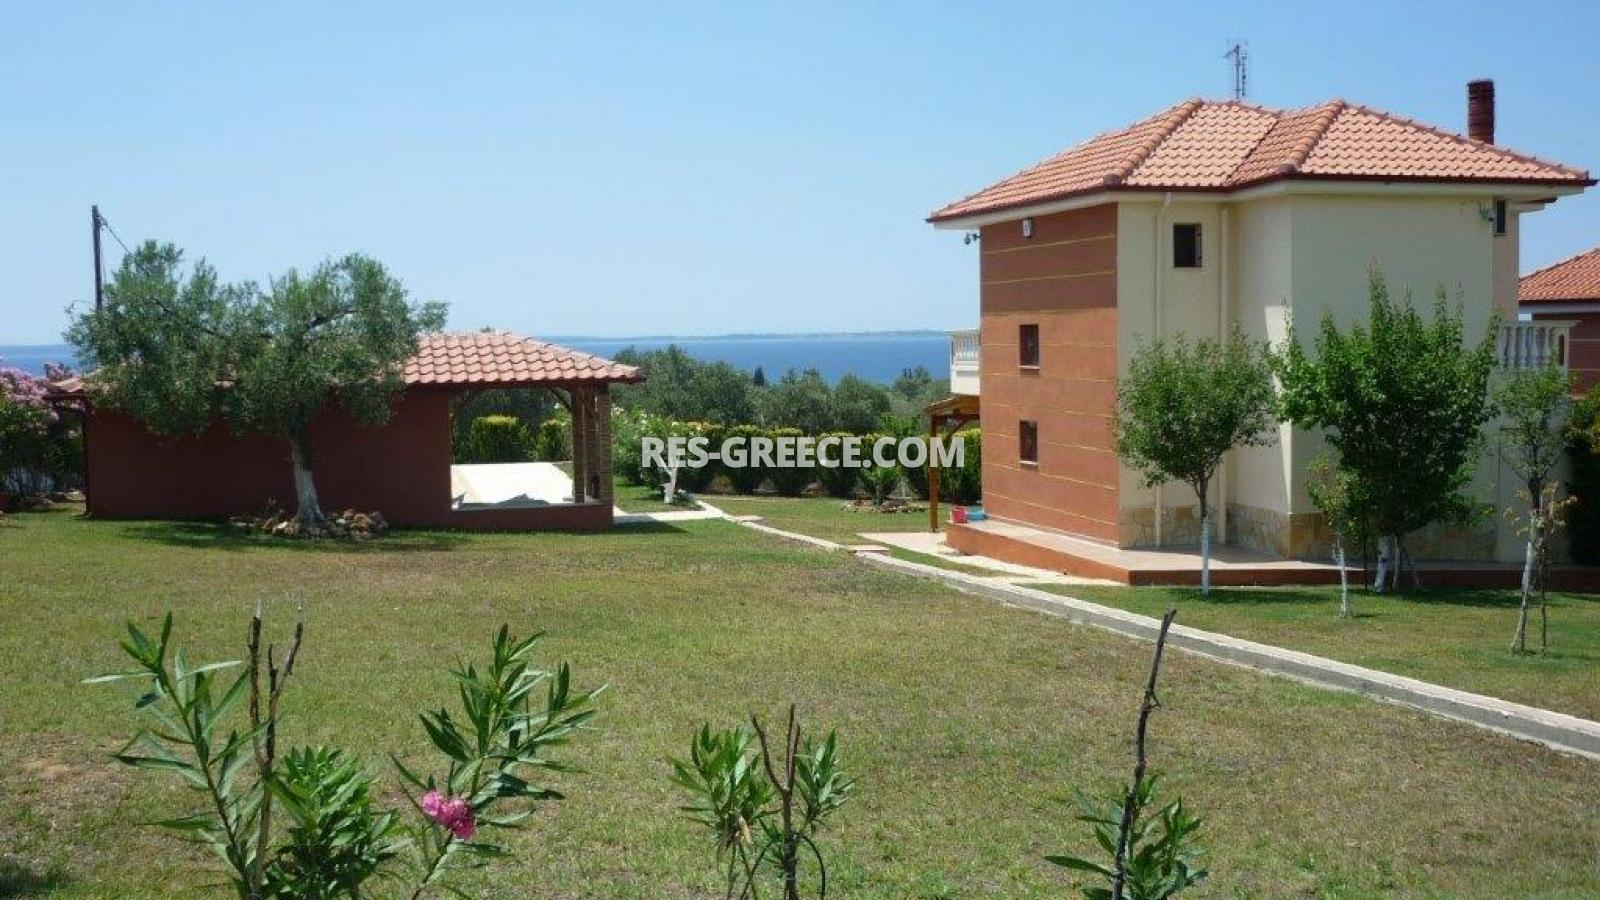 Eleones, Halkidiki-Sithonia, Greece - villa with a pool with great views and big garden - Photo 3